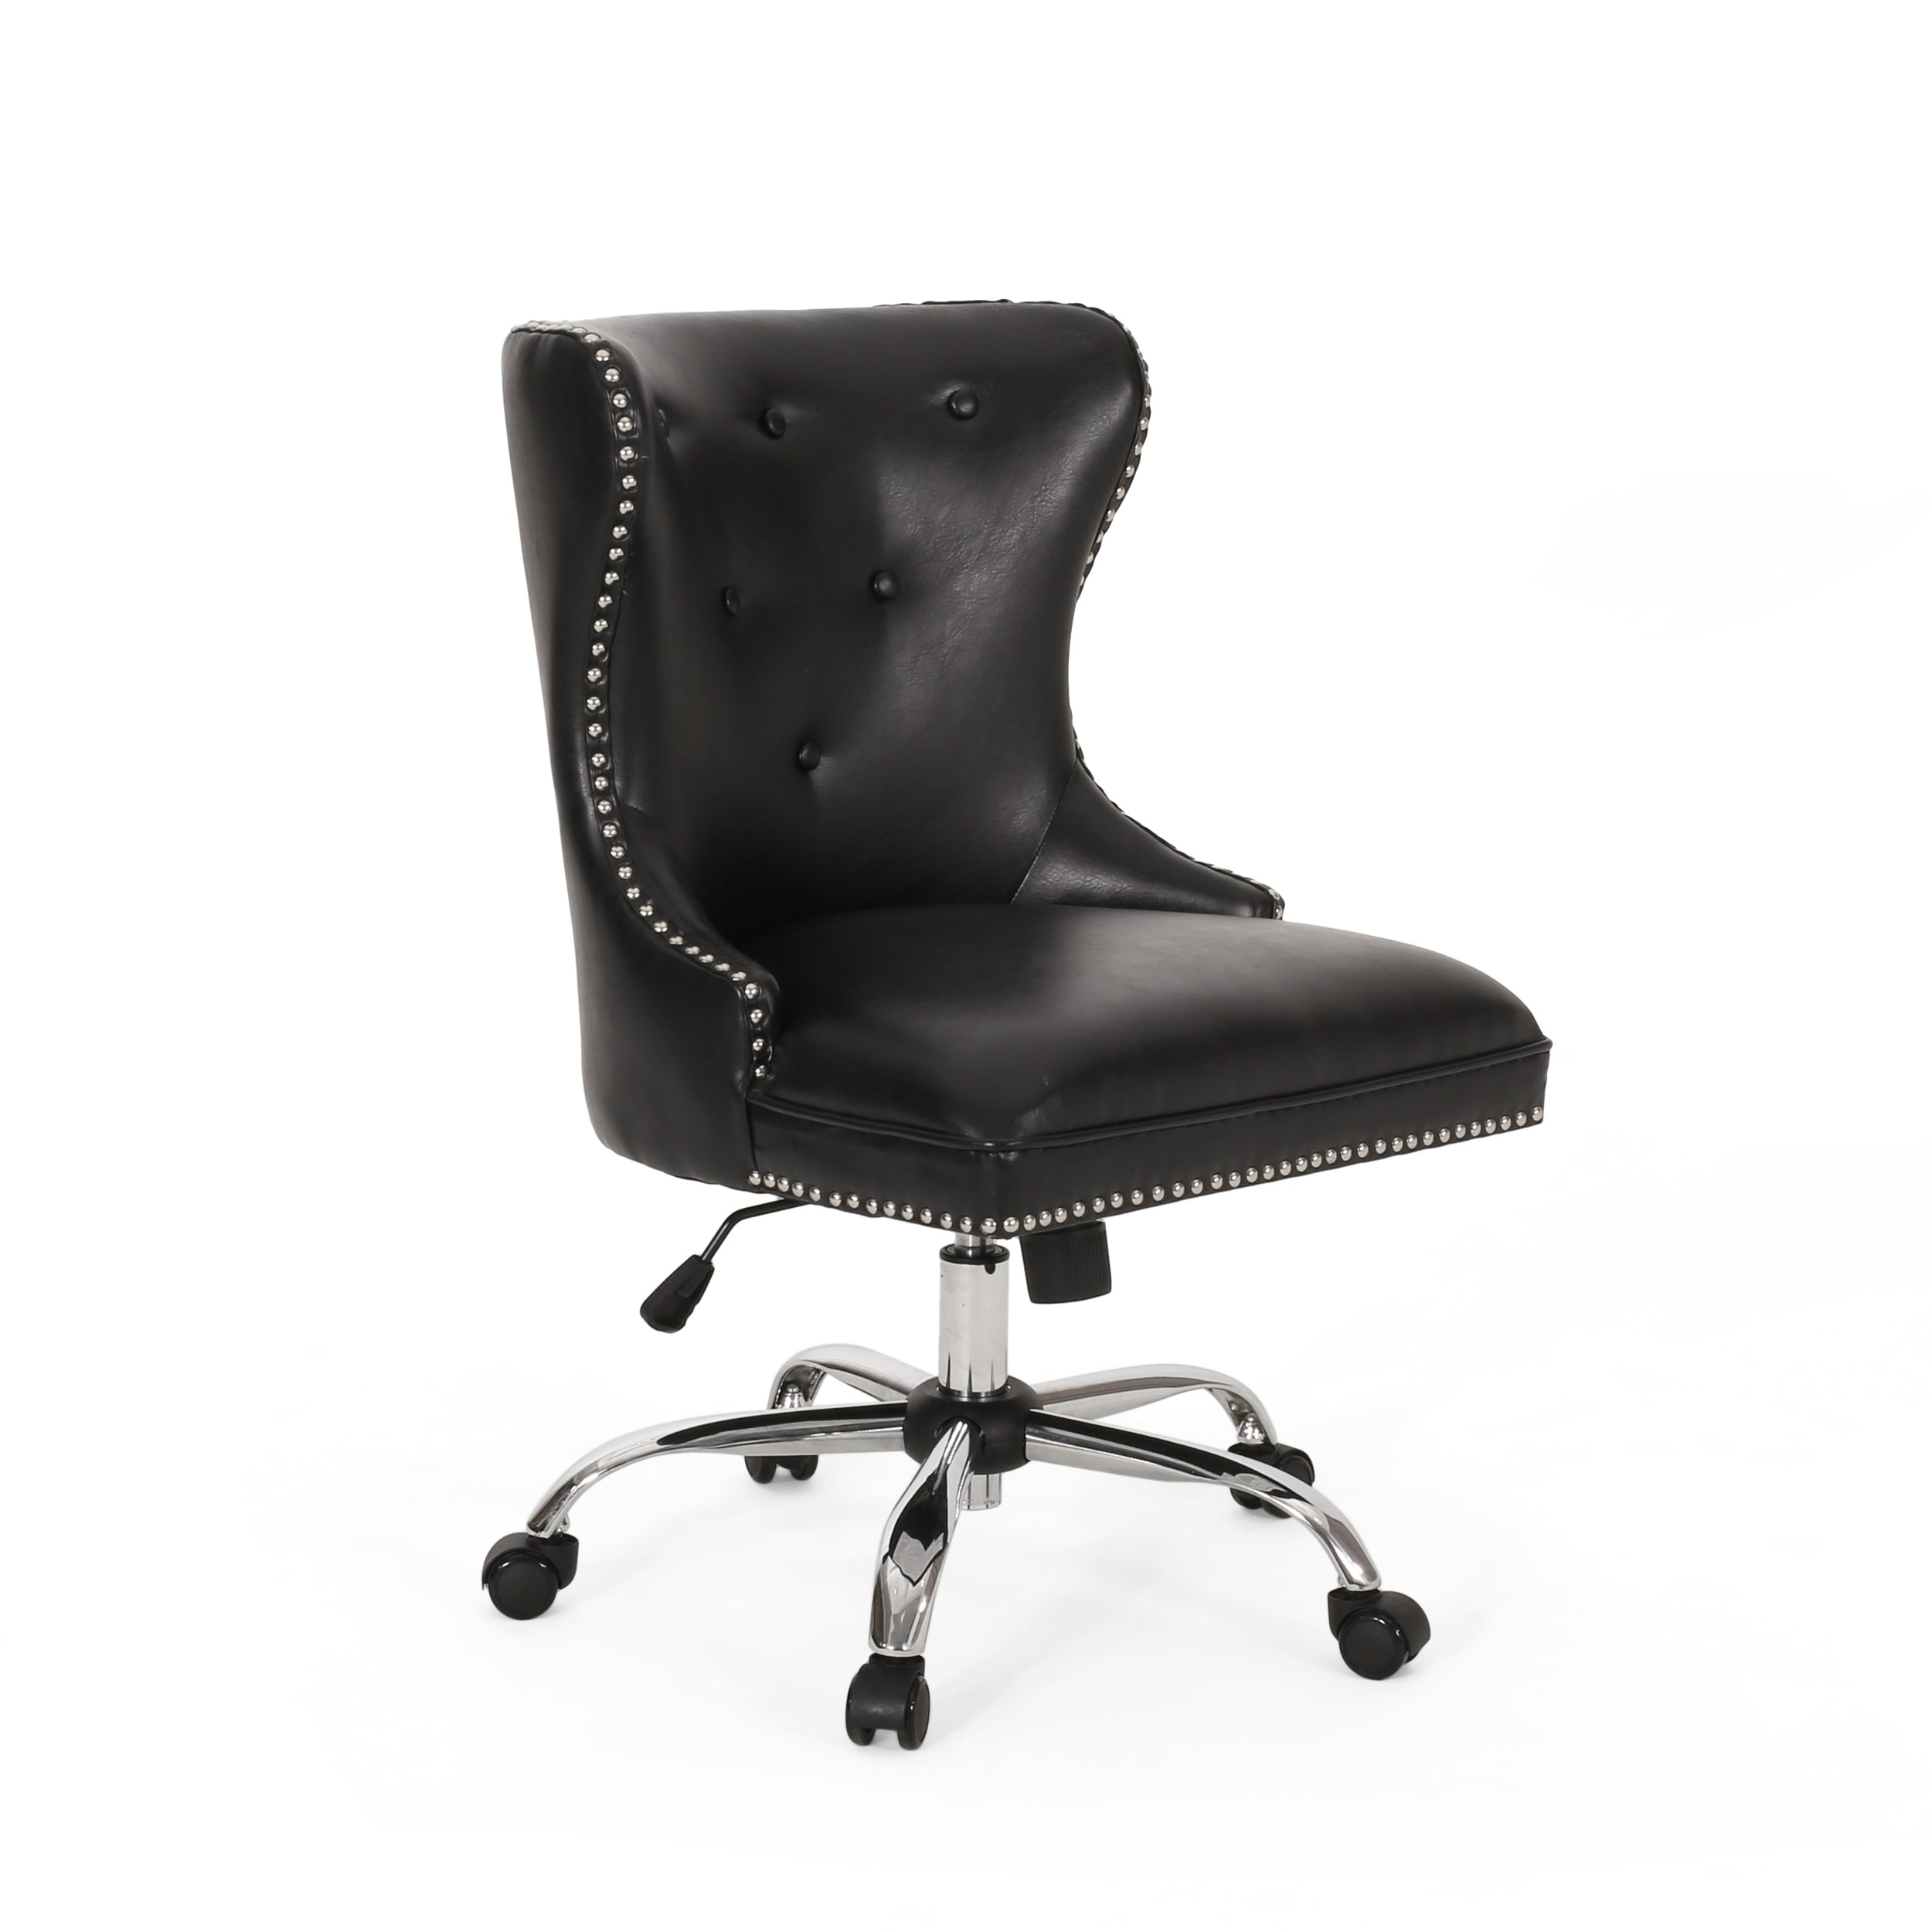 Abagail Contemporary Tufted Swivel Office Chair Midnight